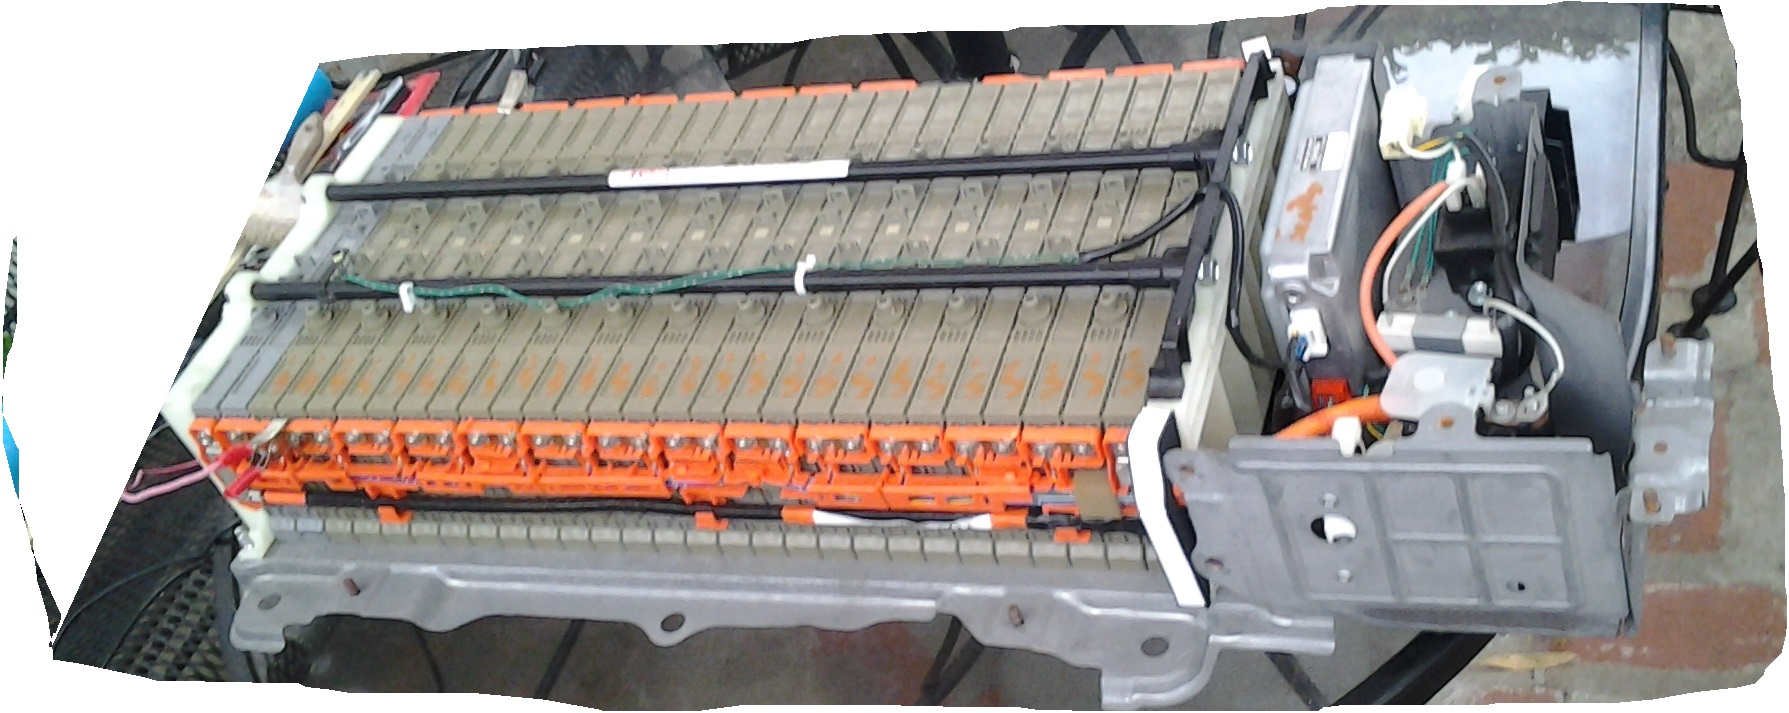 Tab on 2010 Prius Hybrid Battery Replacement